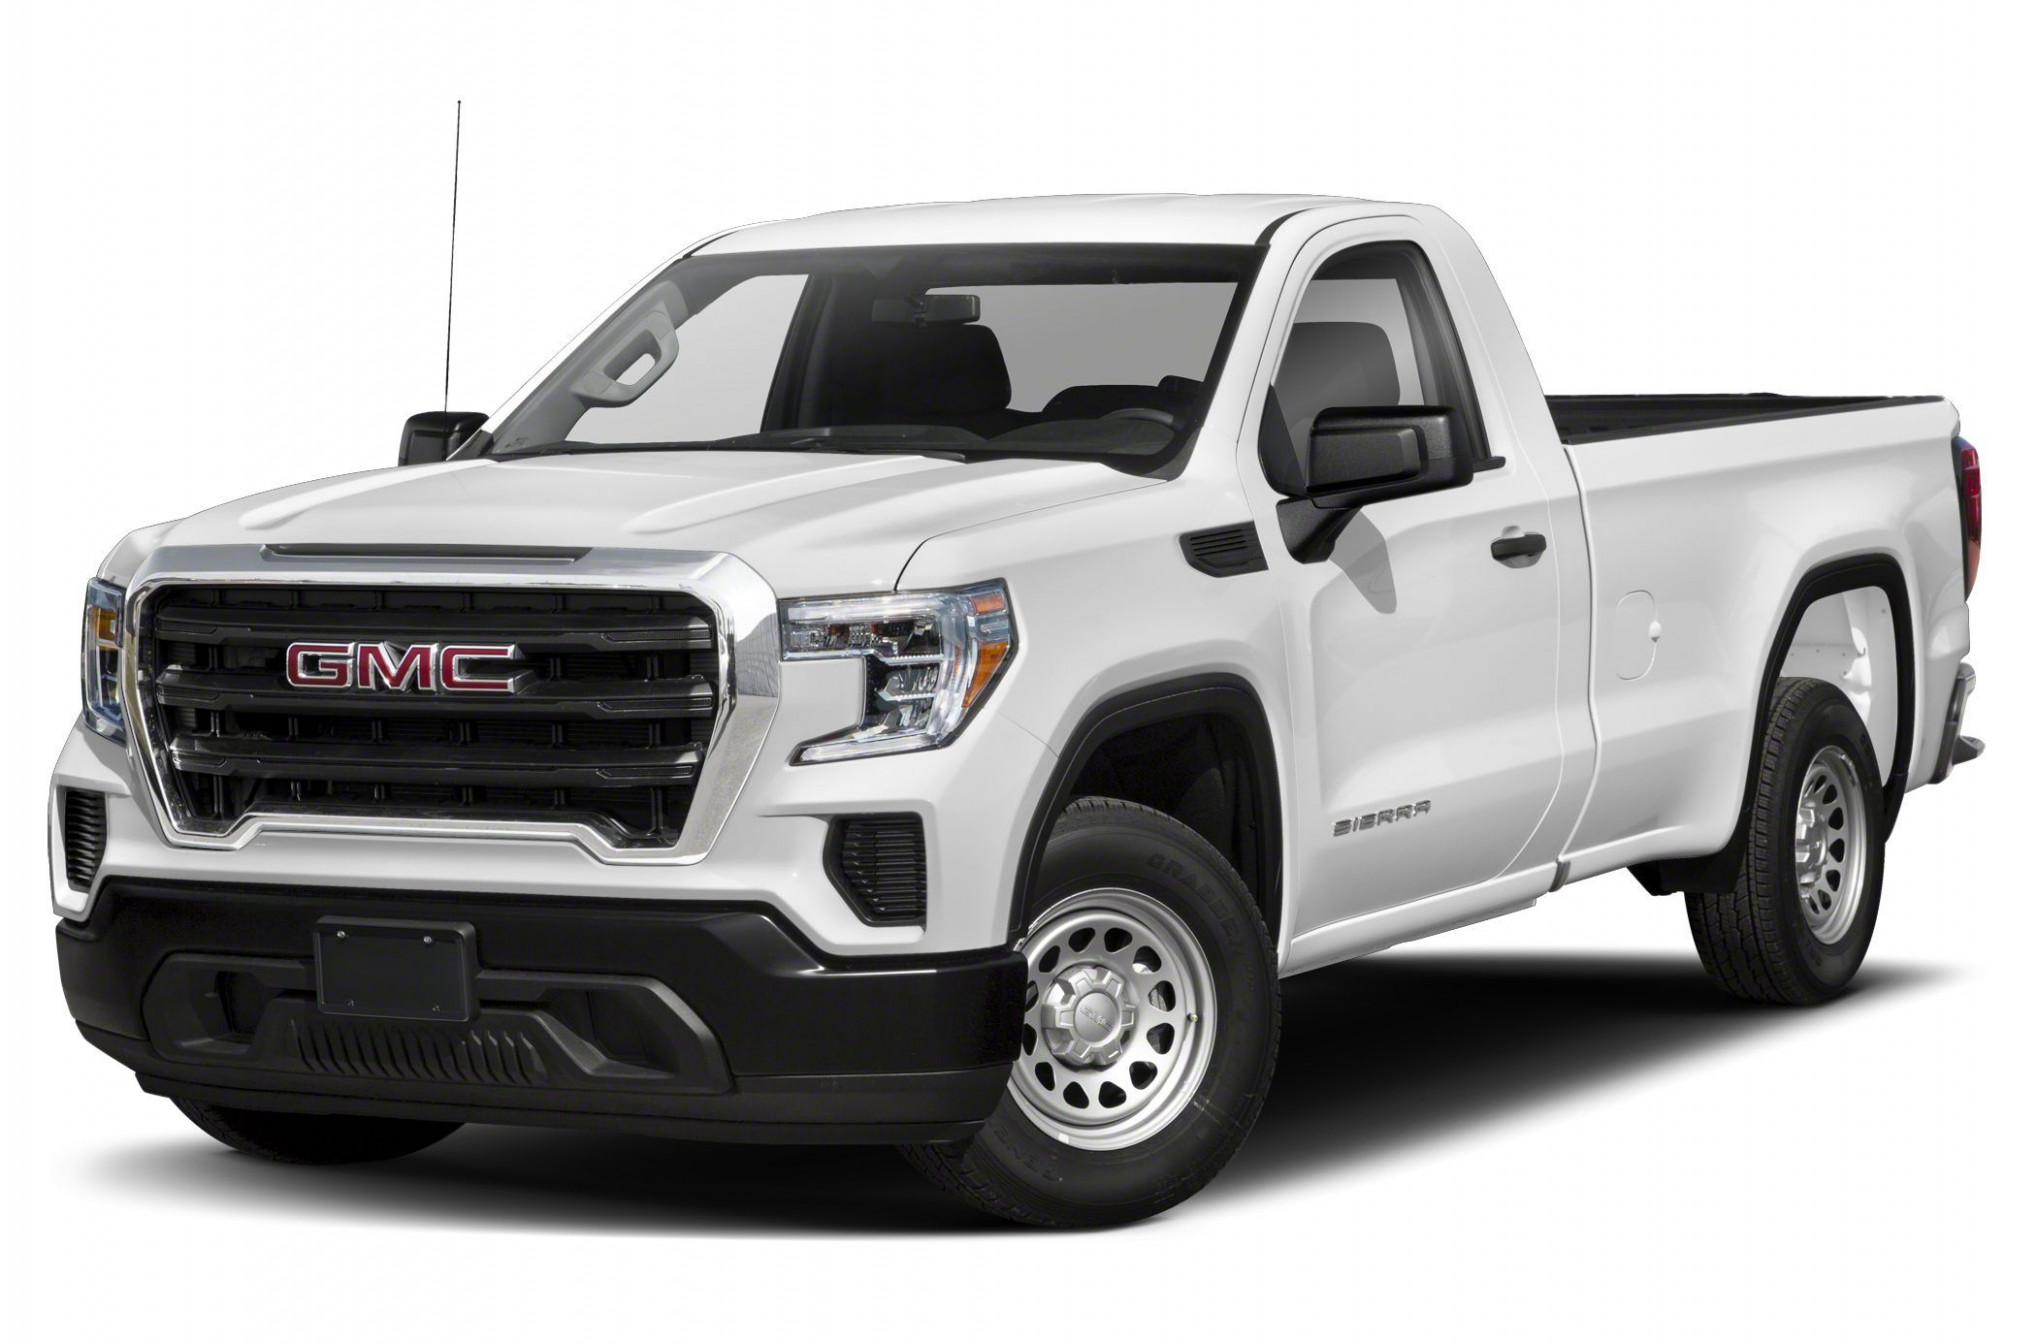 4 Gmc Sierra Build and Price Review and Release Date di 4 | 2020 GMC Build